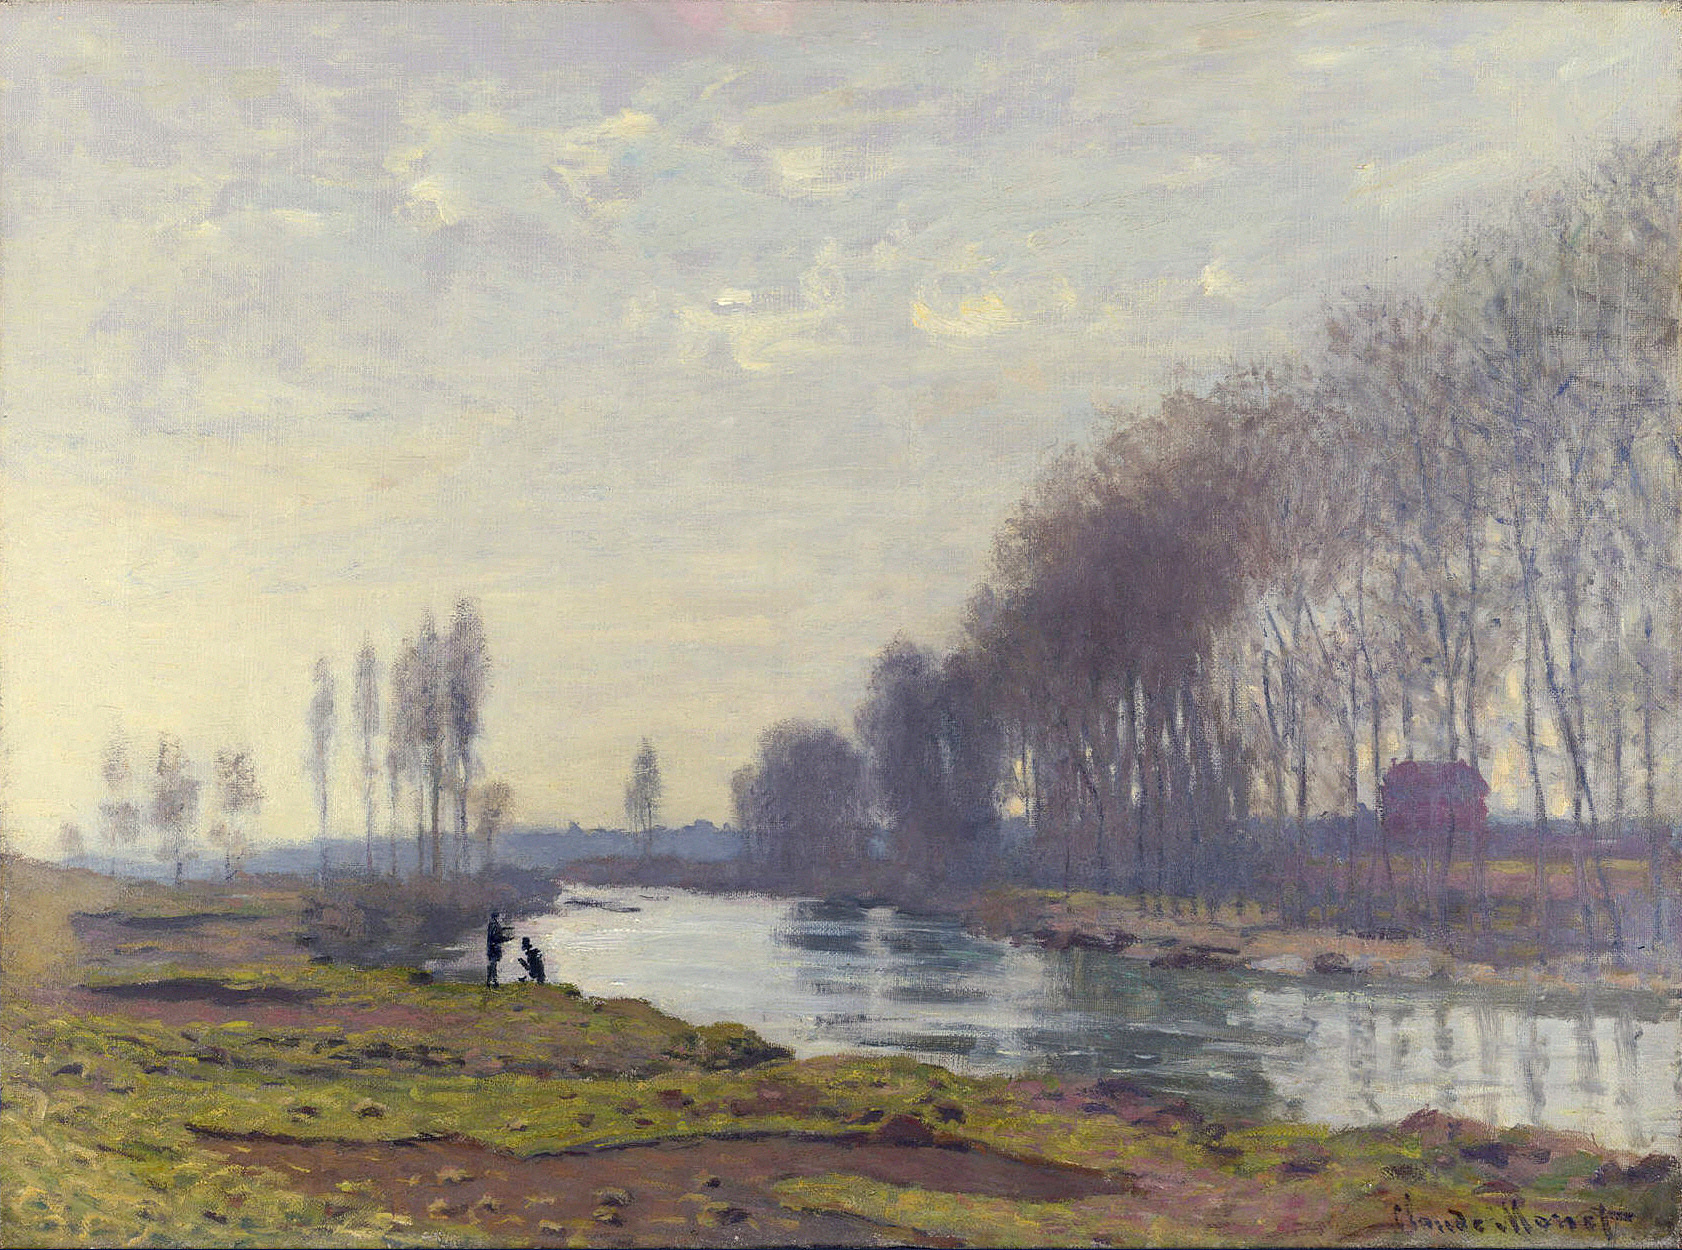 The Small Arm of the Seine at Argenteuil 1872